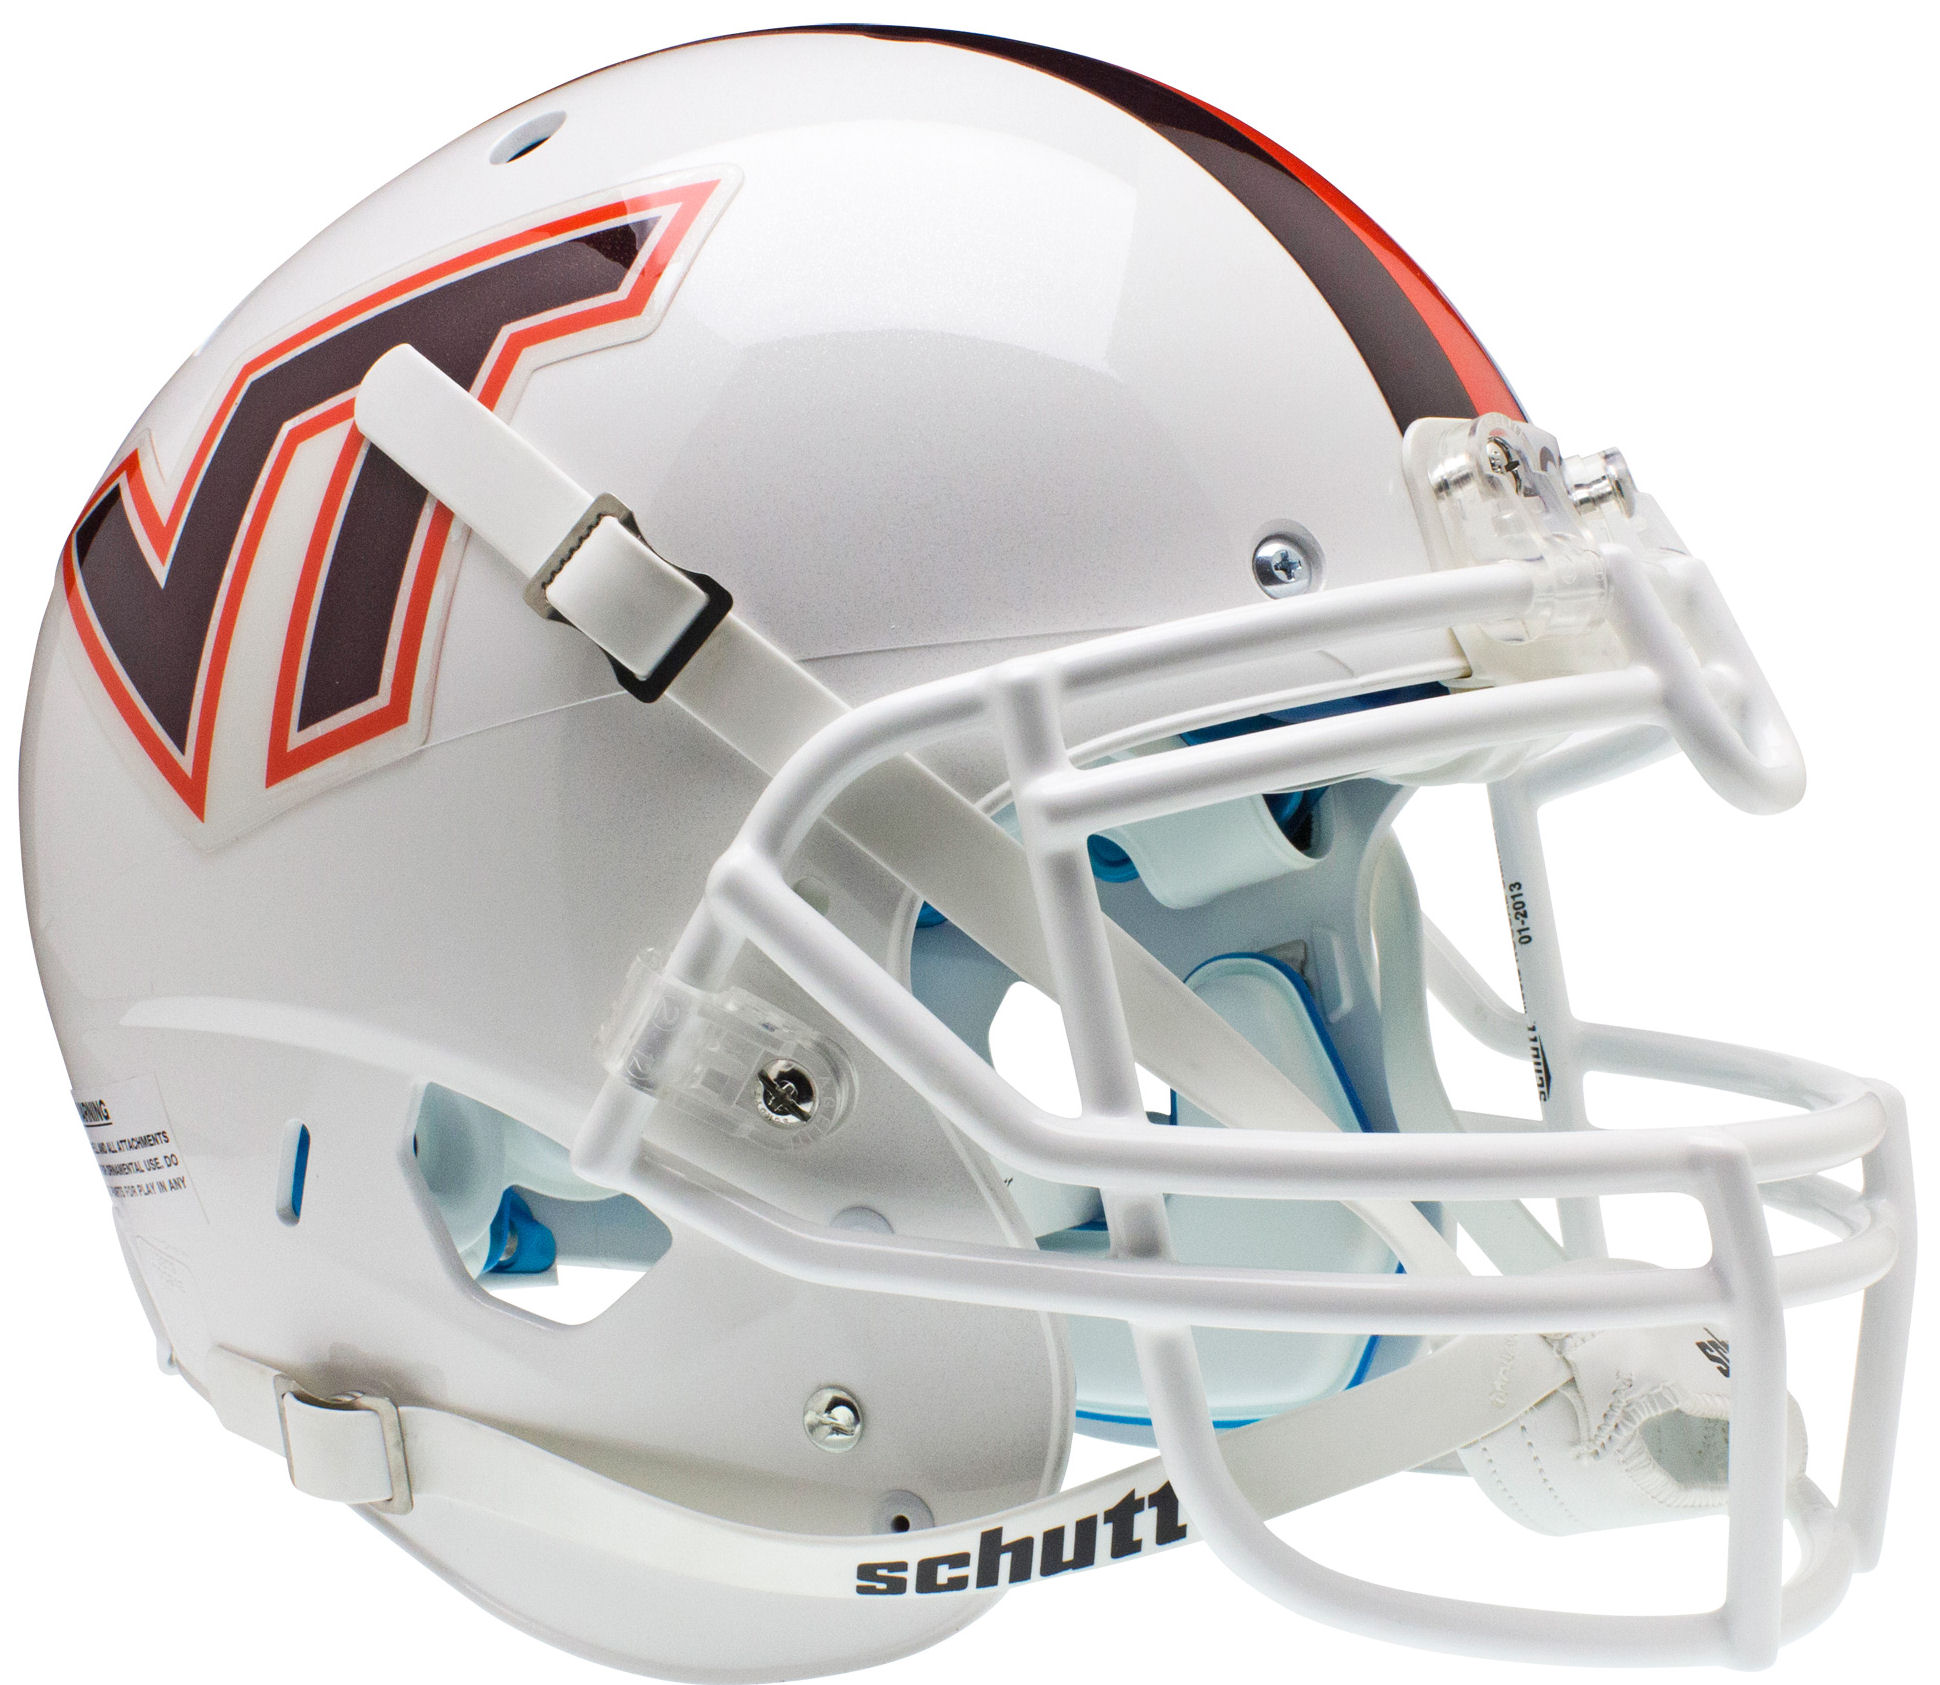 Virginia Tech Hokies Authentic College XP Football Helmet Schutt <B>White w/Stripe</B>